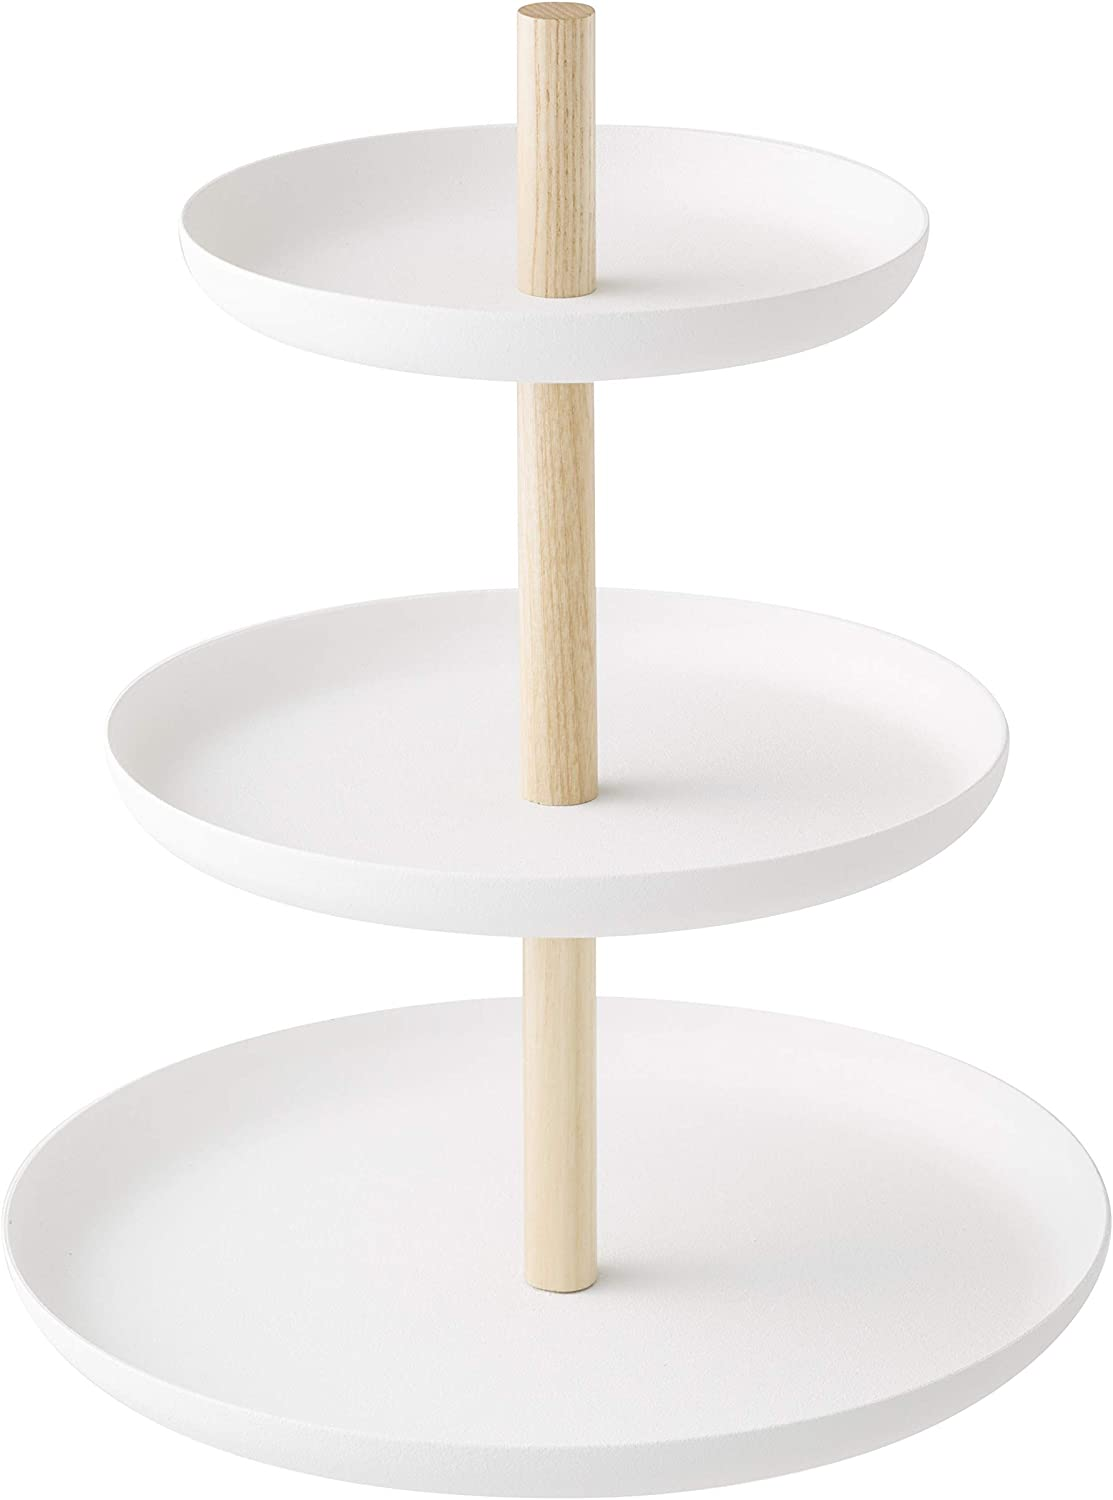 Yamazaki Home Tosca 3-Tier Food Serving Stand – Appetizer & Dessert Tray Party Organizer